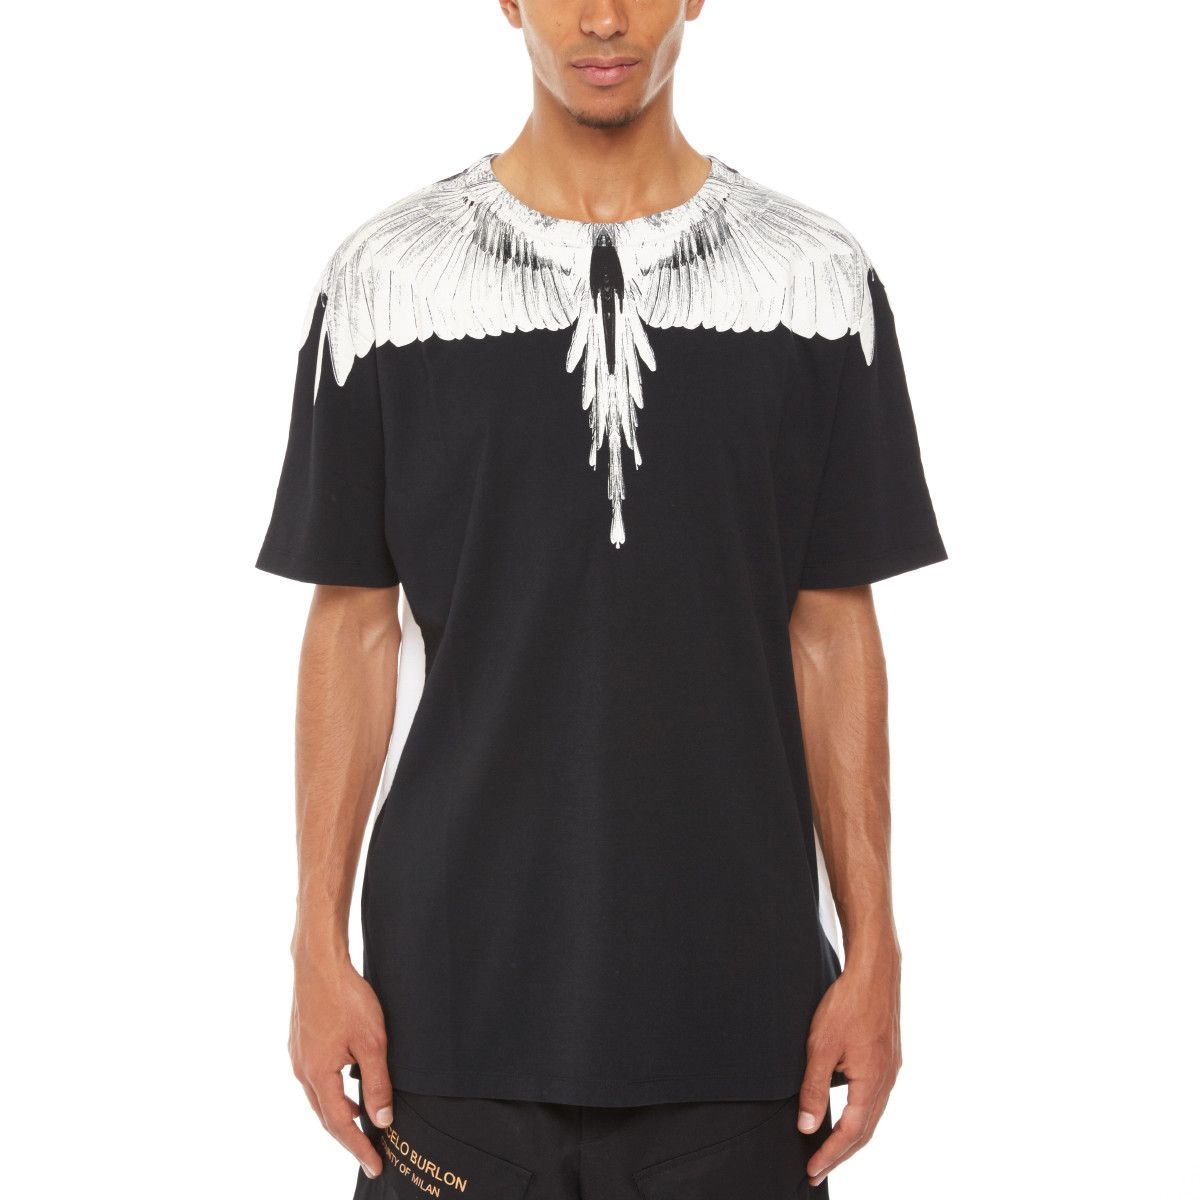 bc3c8b24 Double Wing t-shirt from the S/S2018 Marcelo Burlon County of Milan  collection